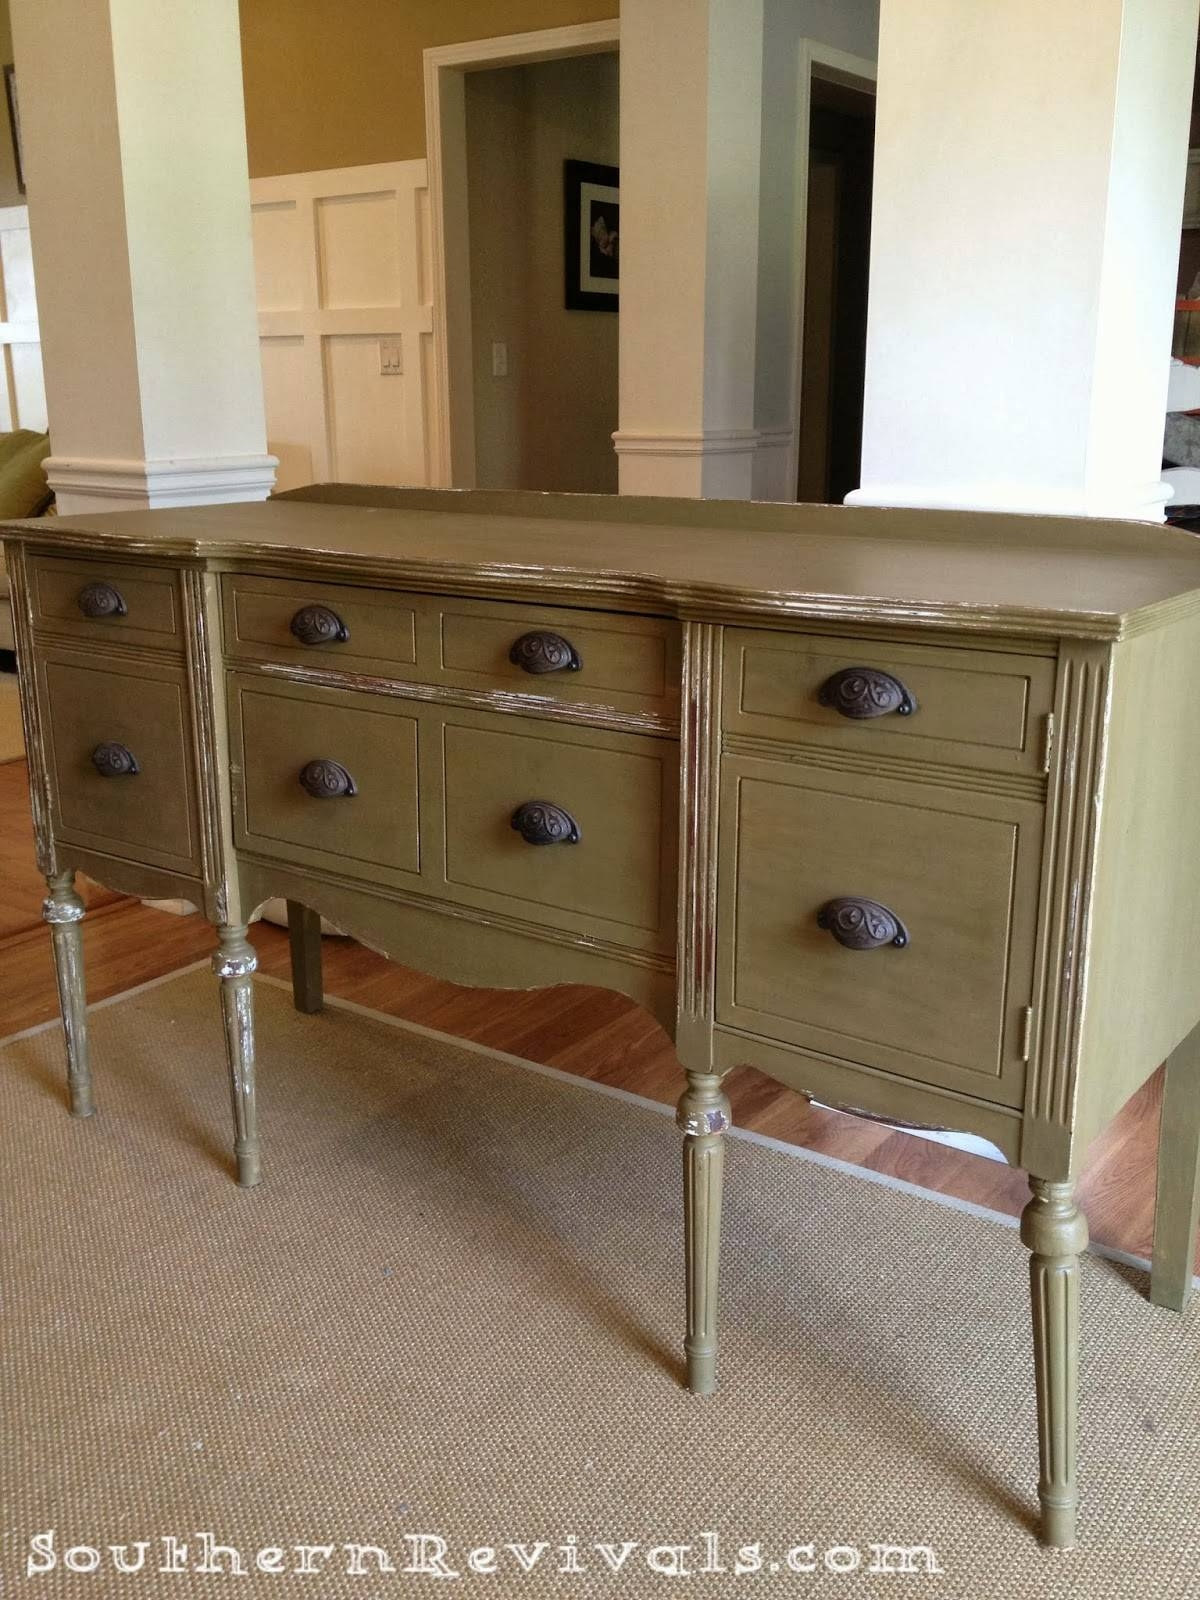 Updating A Vintage Sideboard Buffet With A Pop Of Color – Southern Intended For Most Up To Date Painted Sideboards And Buffets (#15 of 15)